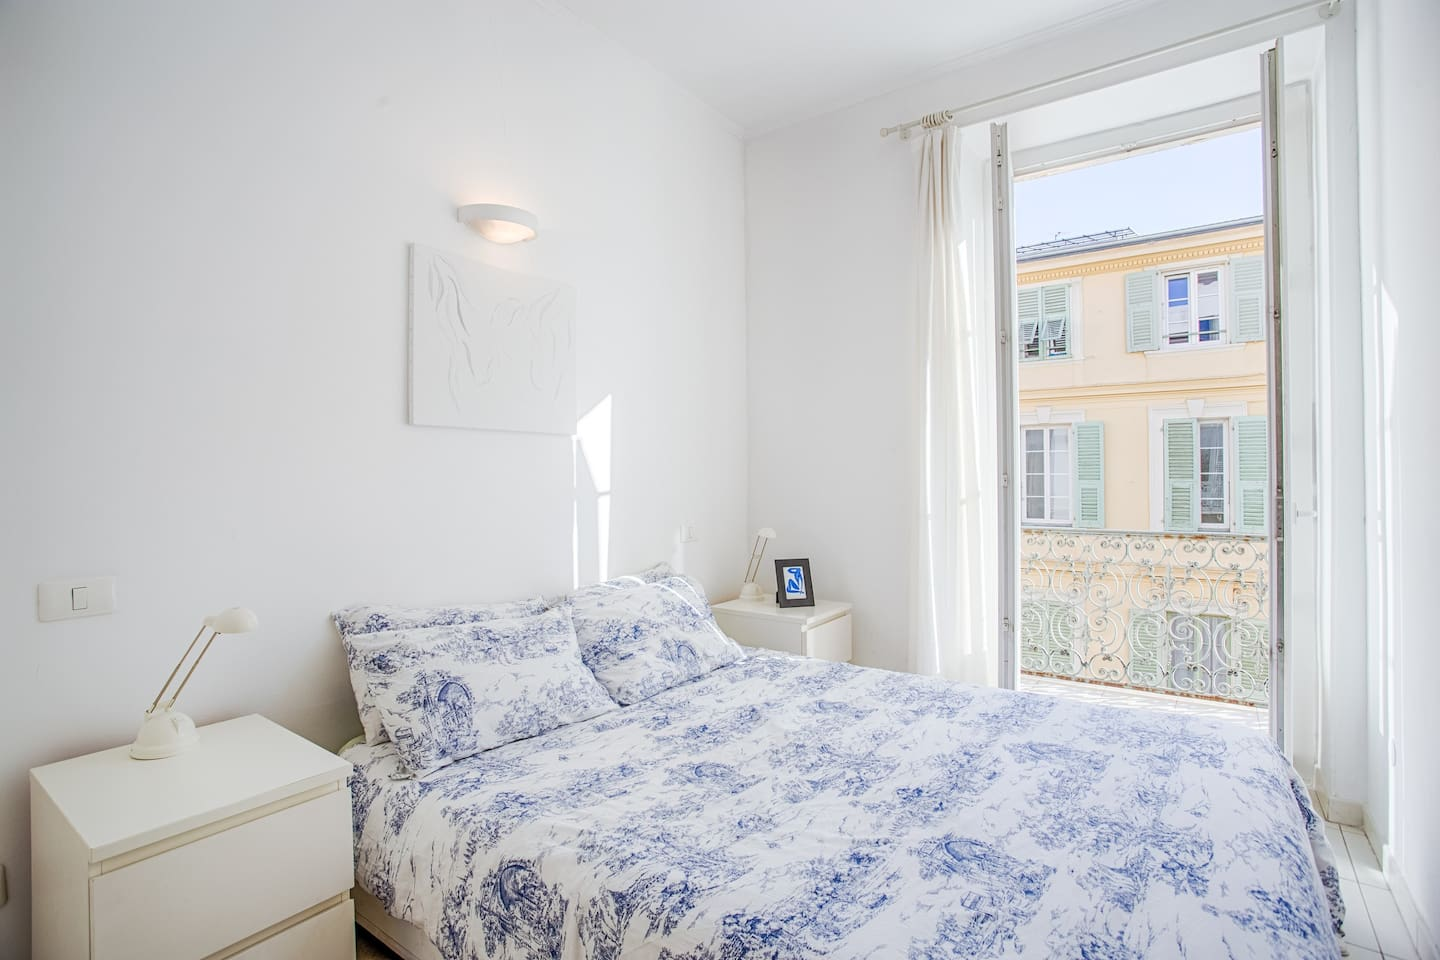 relax in this beautiful double bedroom with double glazing doors and a long balcony overlooking a traffic free pedestrian zone